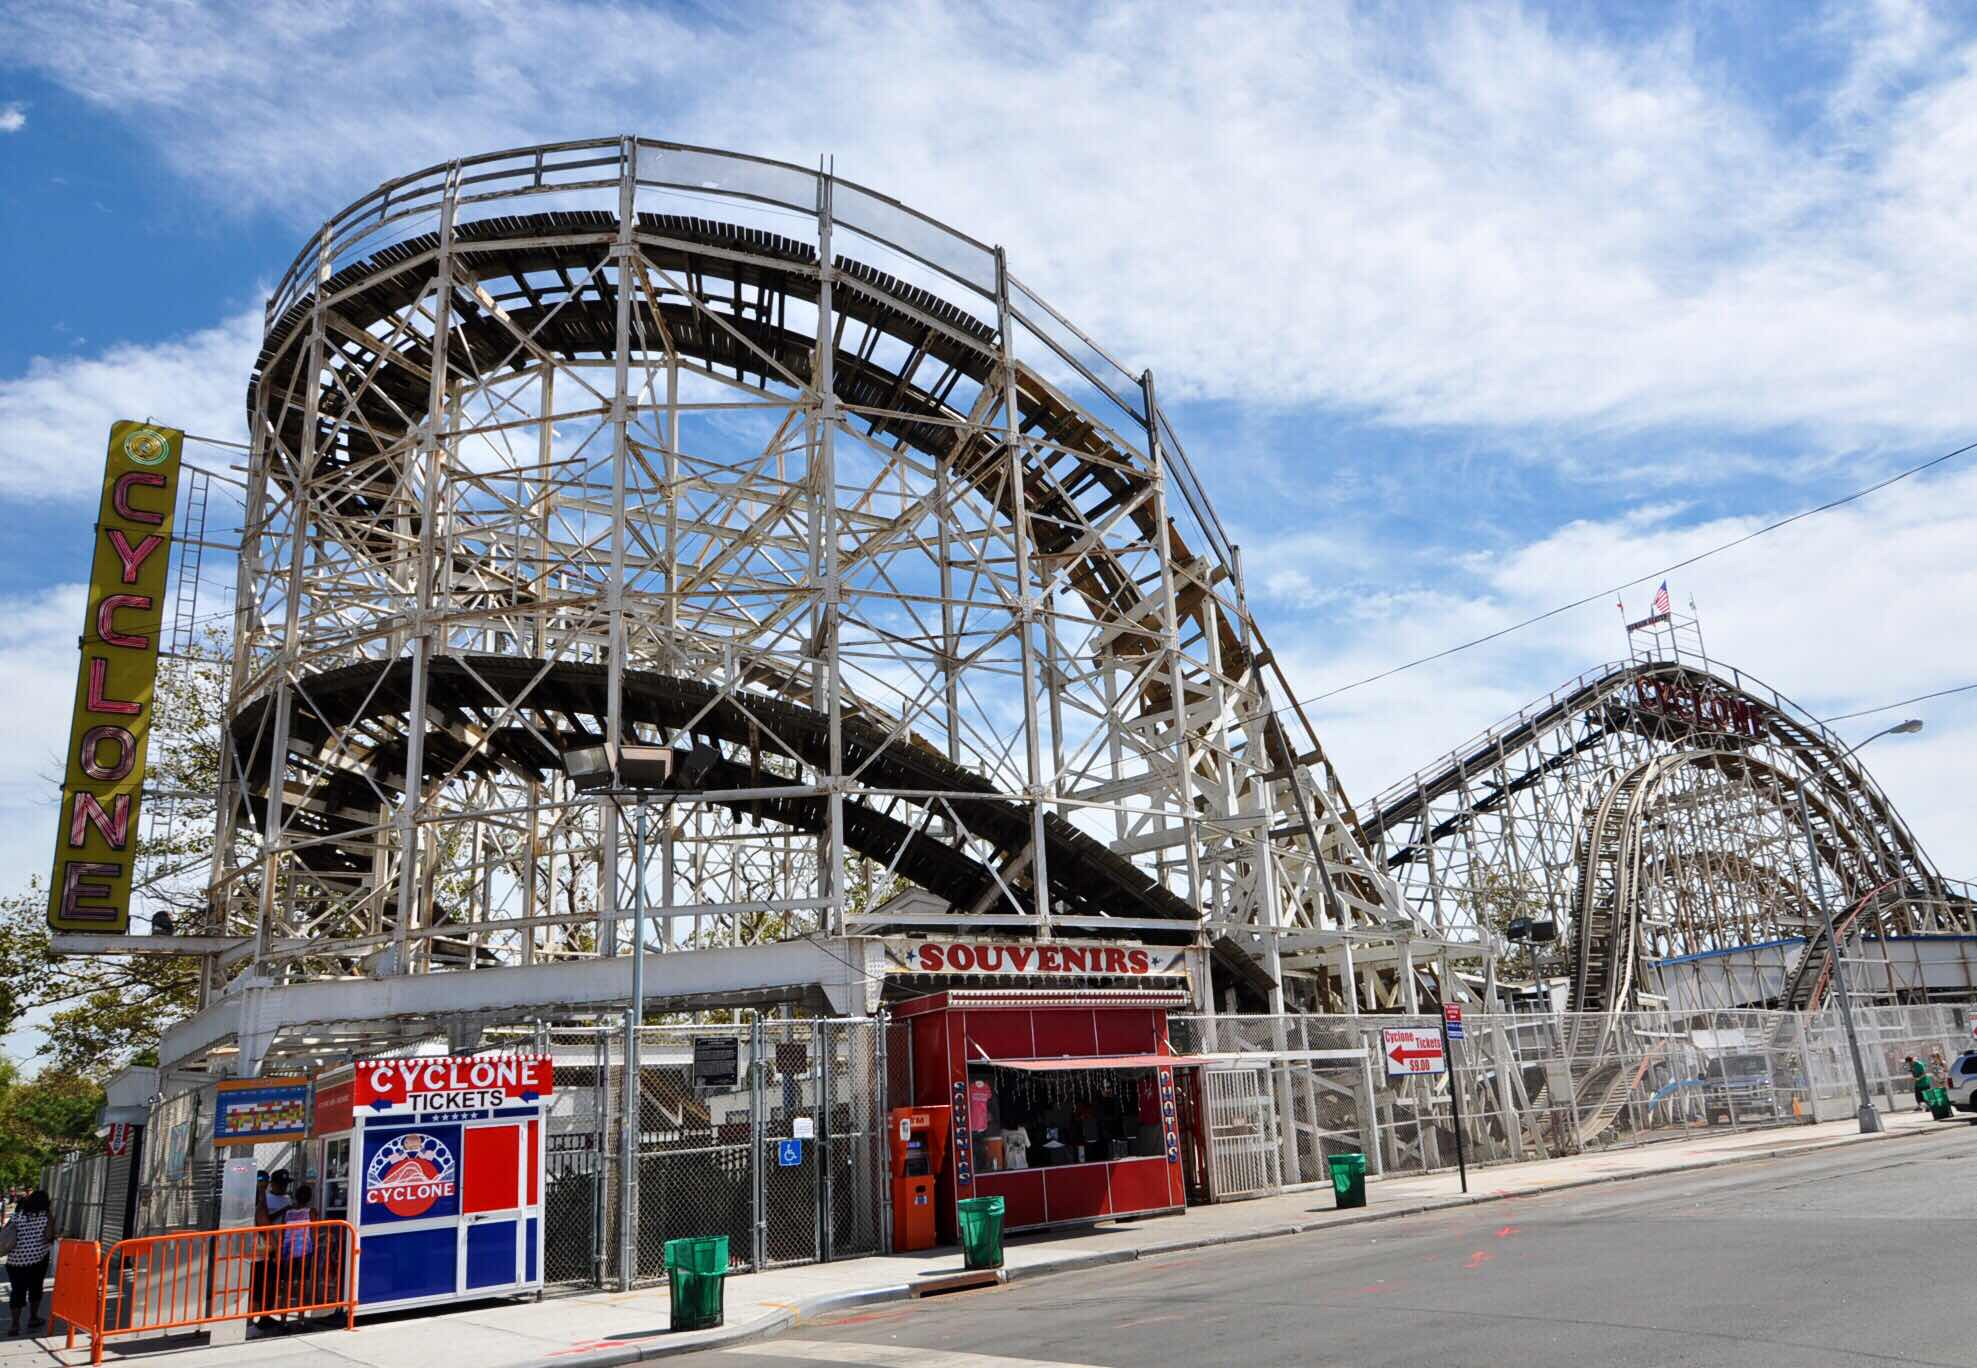 Monona Terrace Goes For Roller Coaster >> Lloydnalex S Blog A New Life In Peru Usa 2 Coney Island A Cure